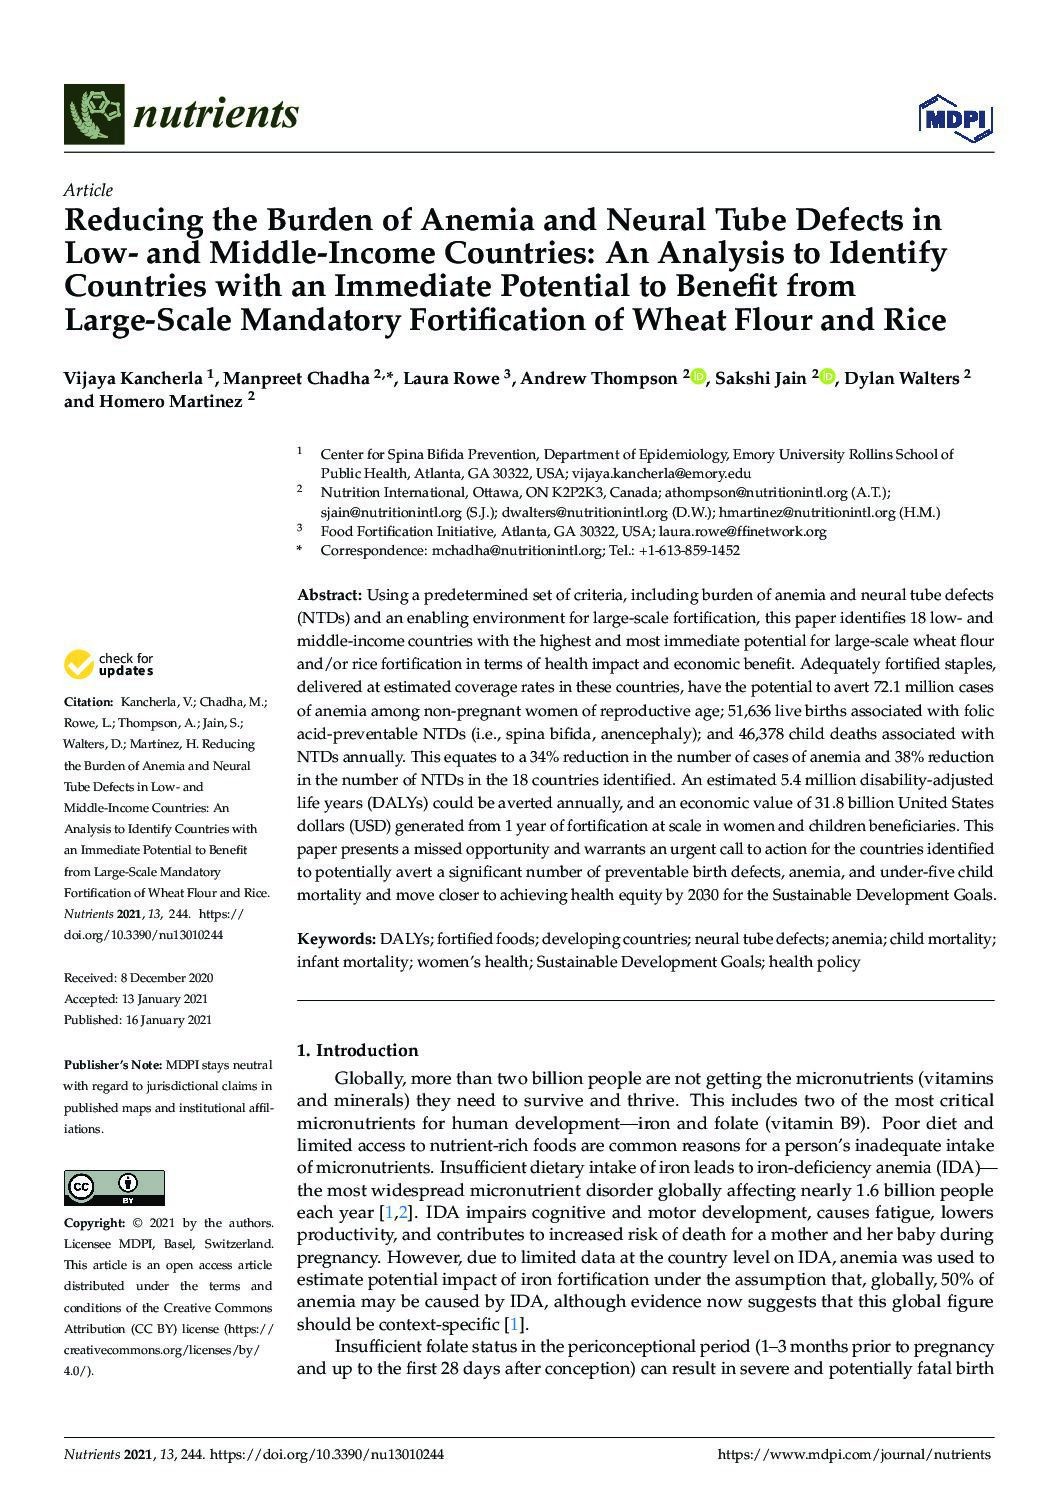 Reducing the Burden of Anemia and Neural Tube Defects in Low- and Middle-Income Countries: An Analysis to Identify Countries with an Immediate Potential to Benefit from Large-Scale Mandatory Fortification of Wheat Flour and Rice thumbnail